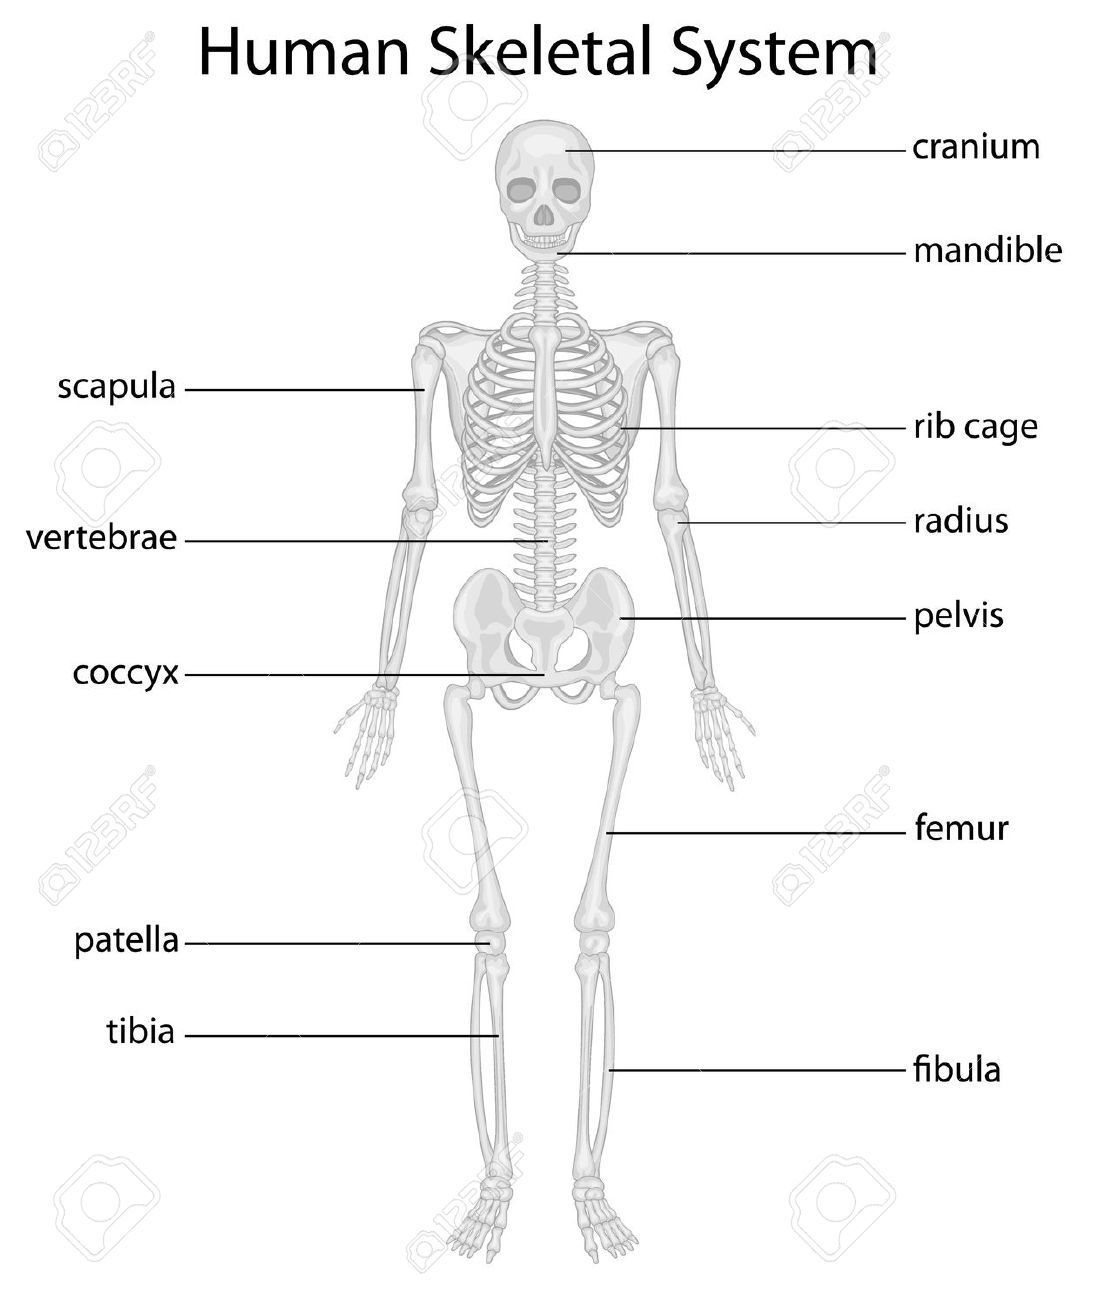 Body Skeleton Diagram Without Labels Skeletal System